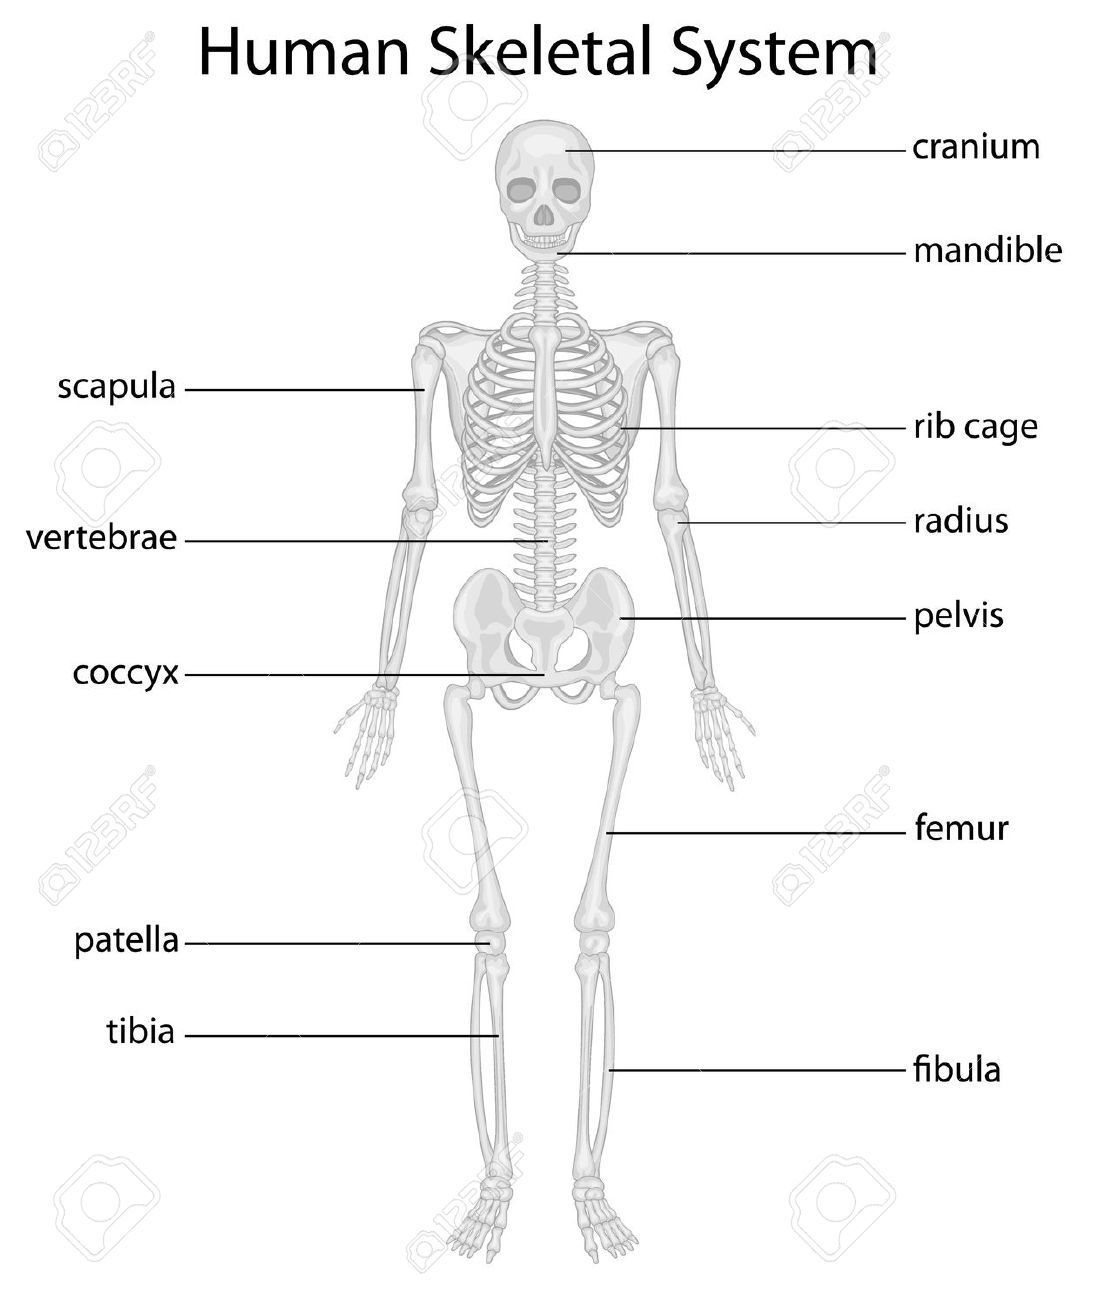 Body Skeleton Diagram Without Labels Skeletal System